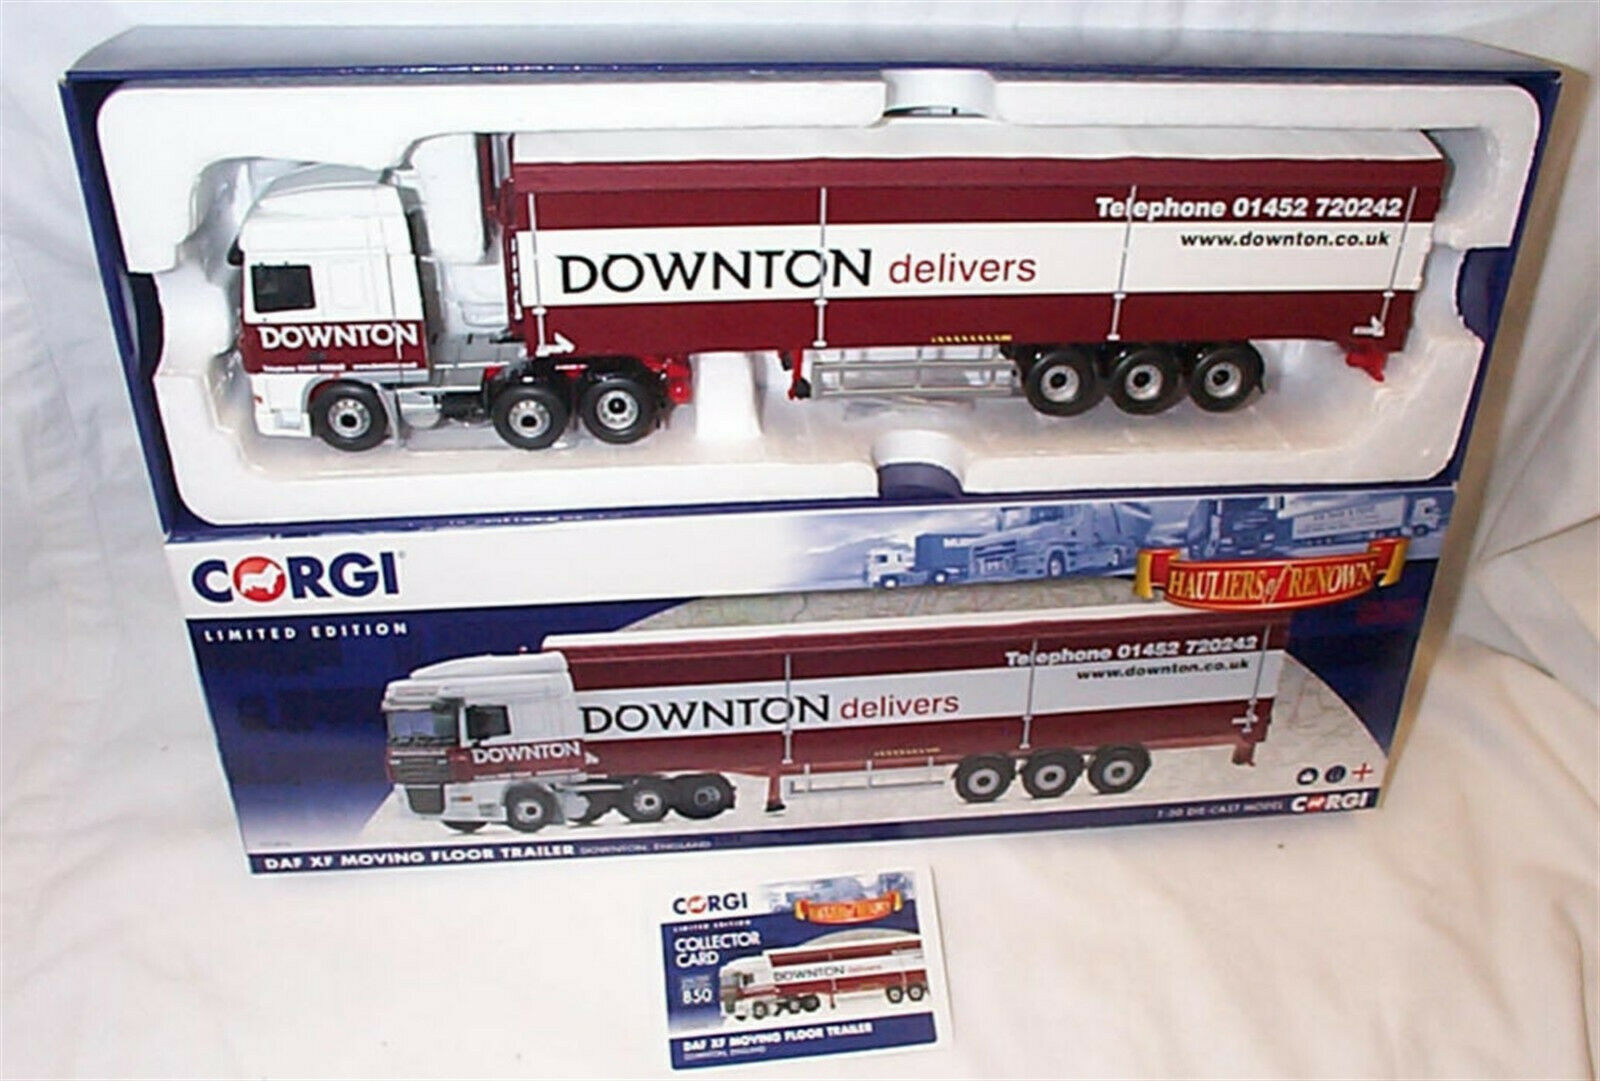 DAF  XF Moving Floor Trailer Downton CC14116 1-50 nouveau IN BOX LTD ED  abordable